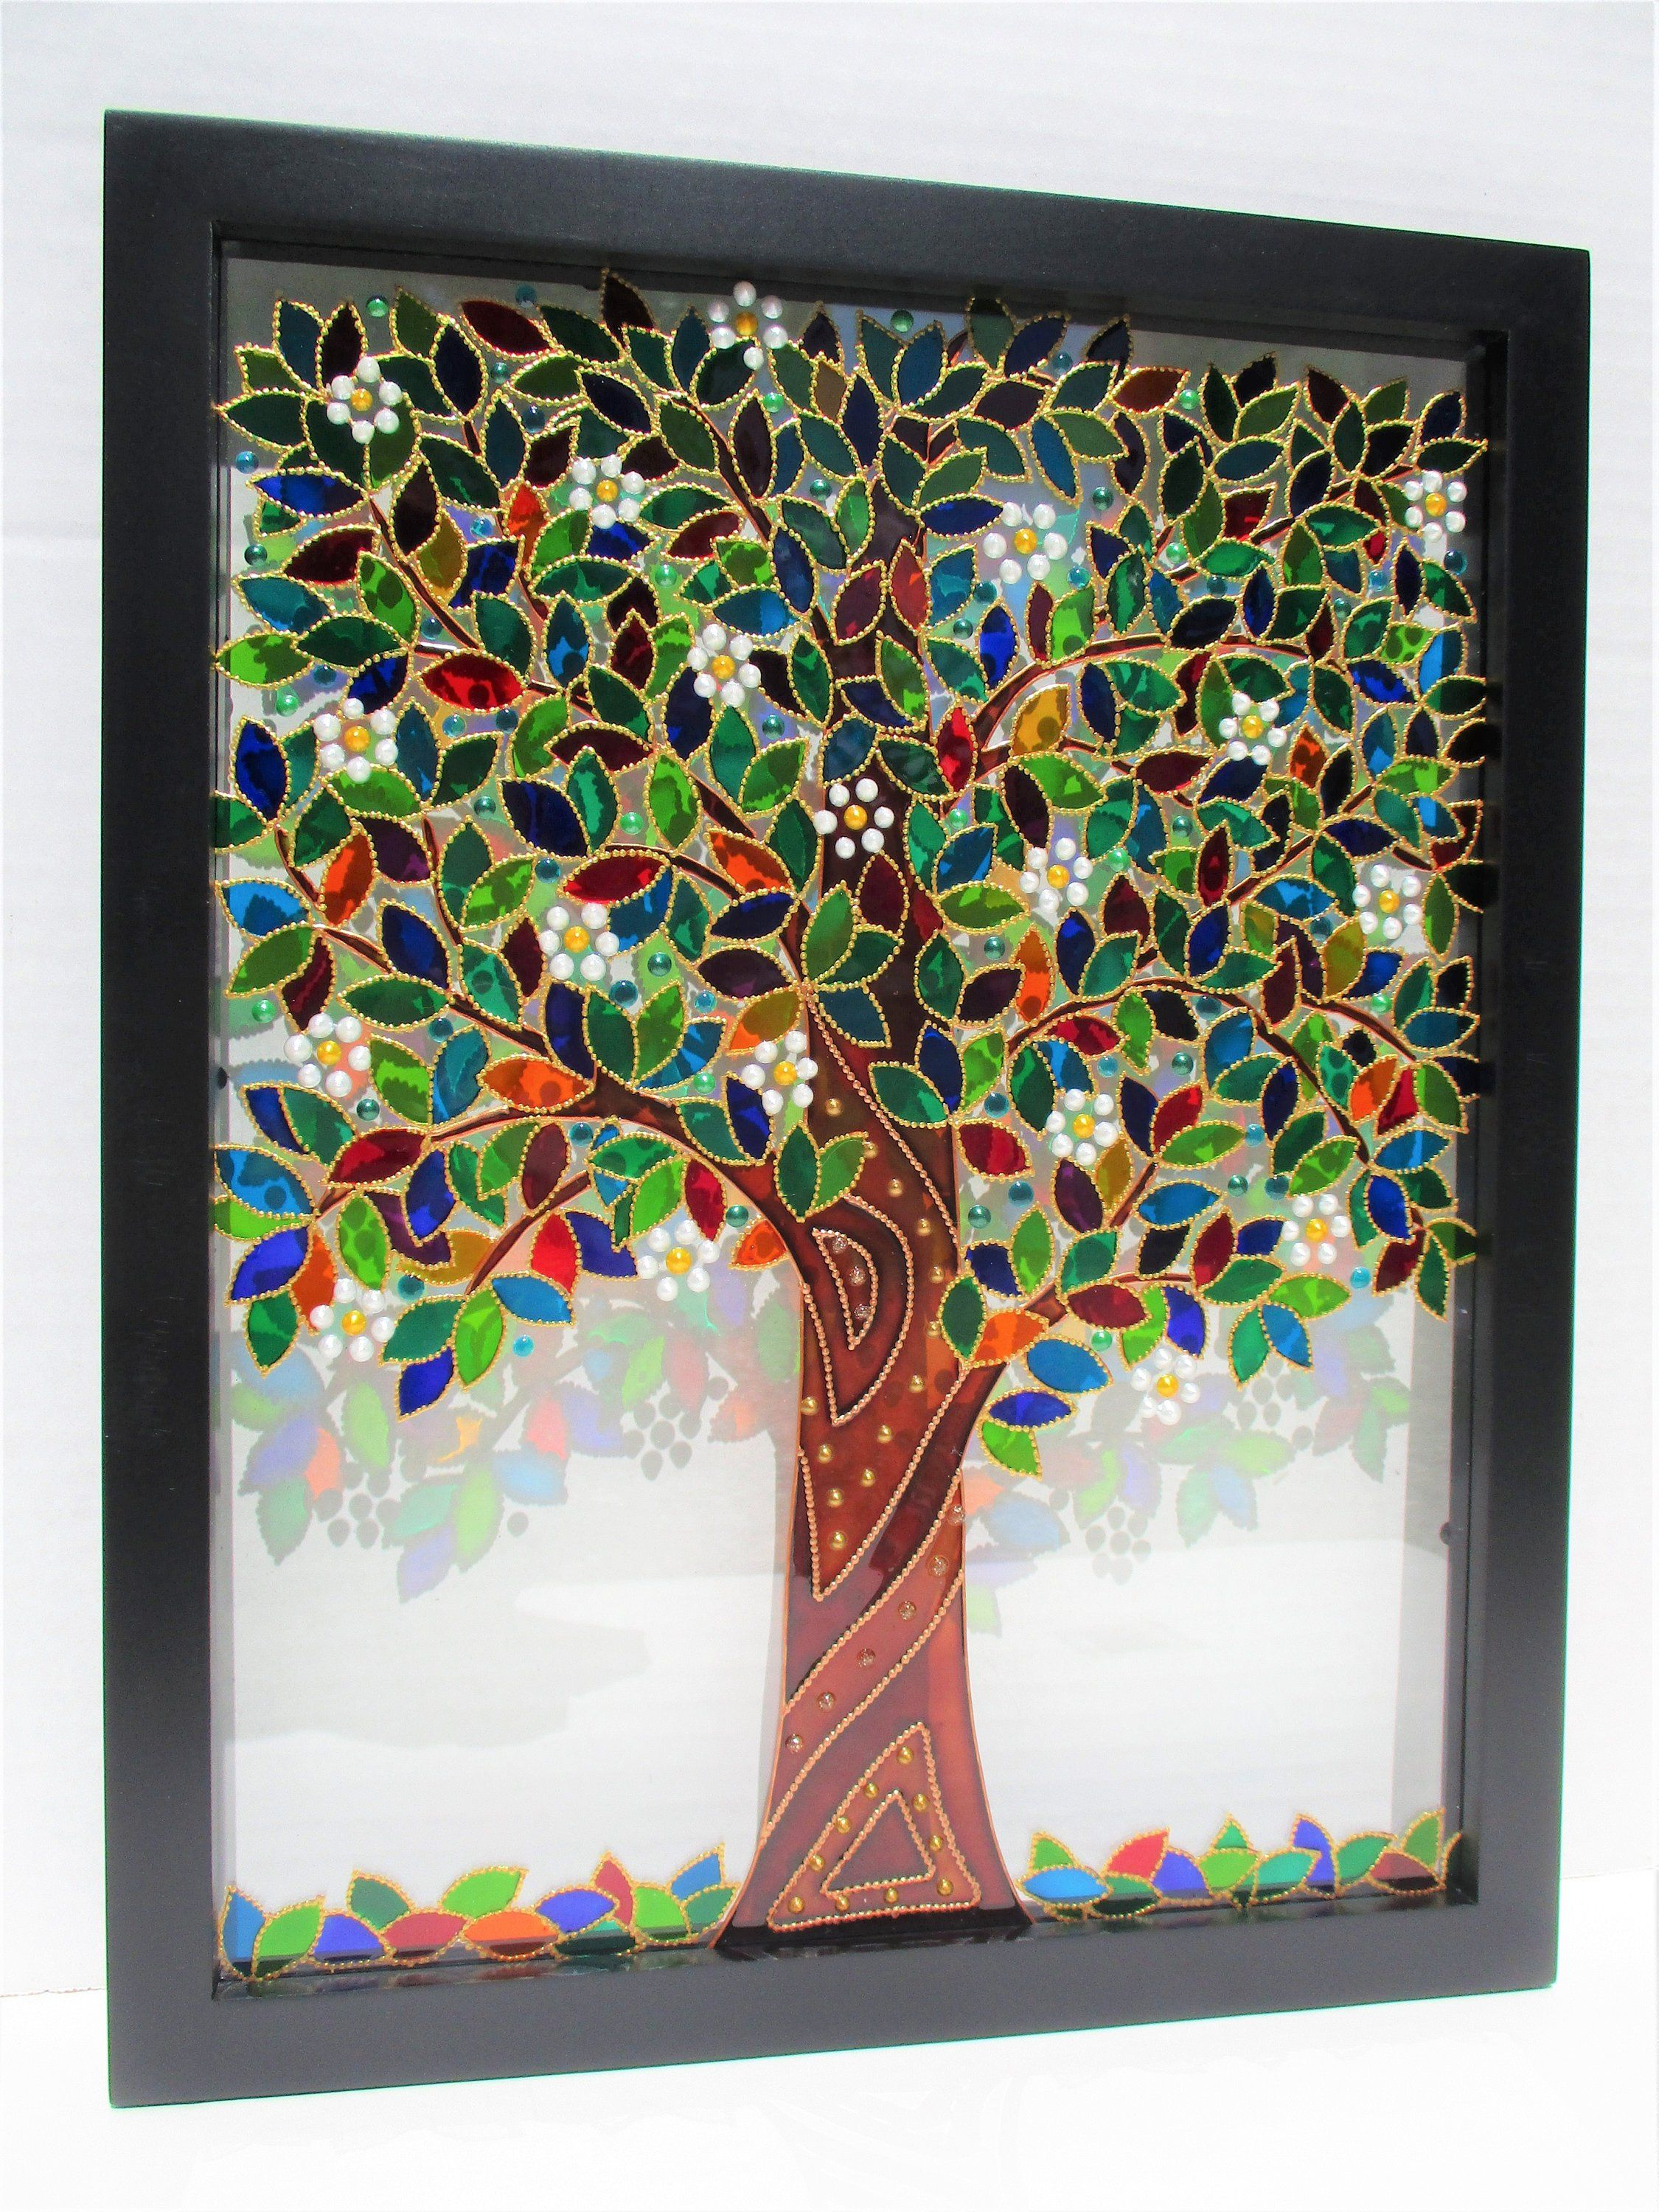 Tree Of Life 15x12 Glass Painting Bohemian Decor Glass Art Suncatcher Stained Glass Wall Decor Window Glass Painting Glass Painting Designs Glass Art Projects